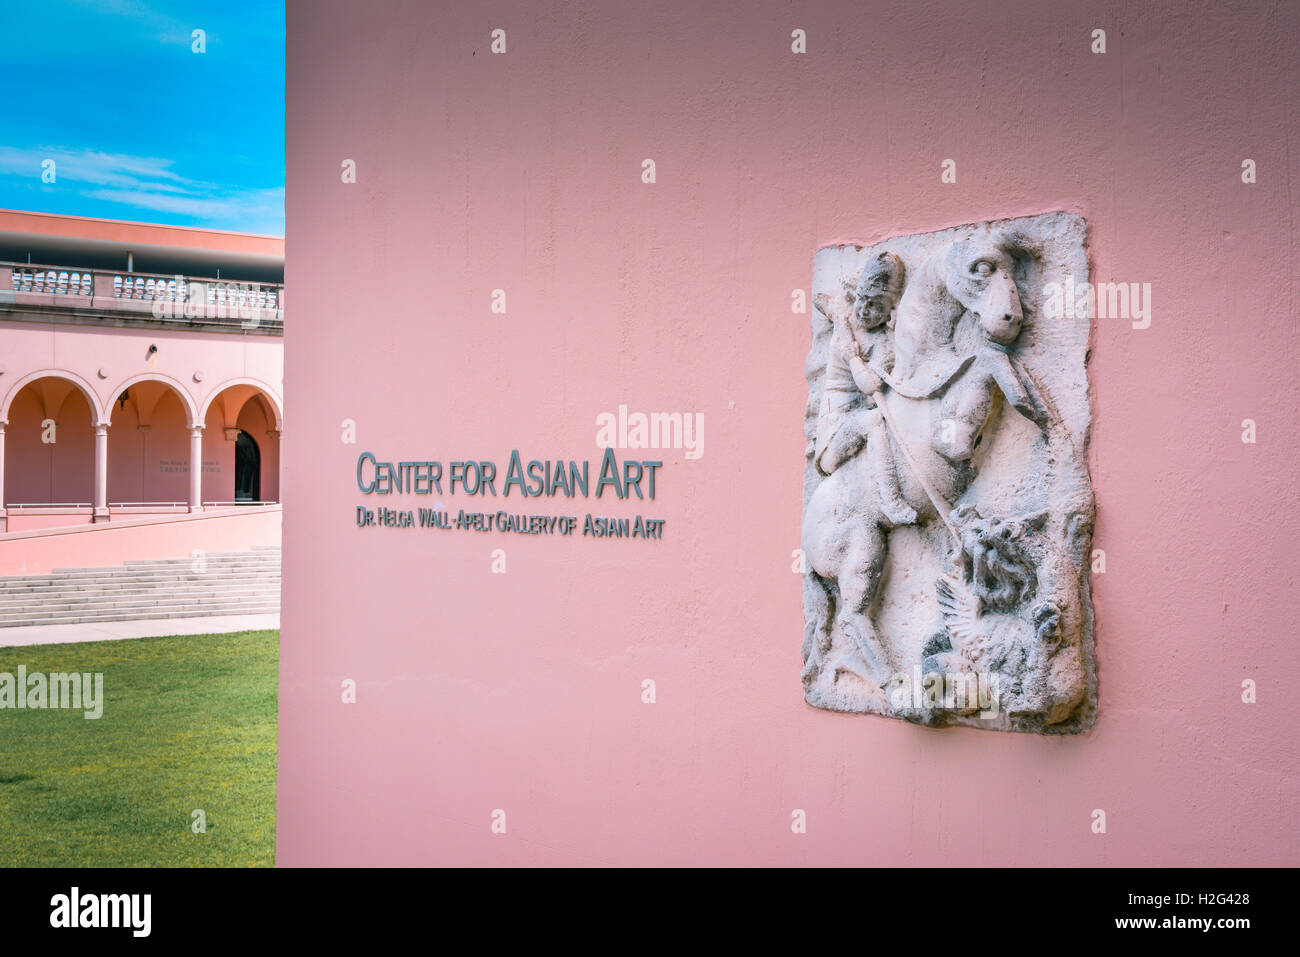 Entrance with ancient plaque to Center for Asian Art in the Dr. Helga Wall-Apelt Gallery at Ringling Art Museum, - Stock Image